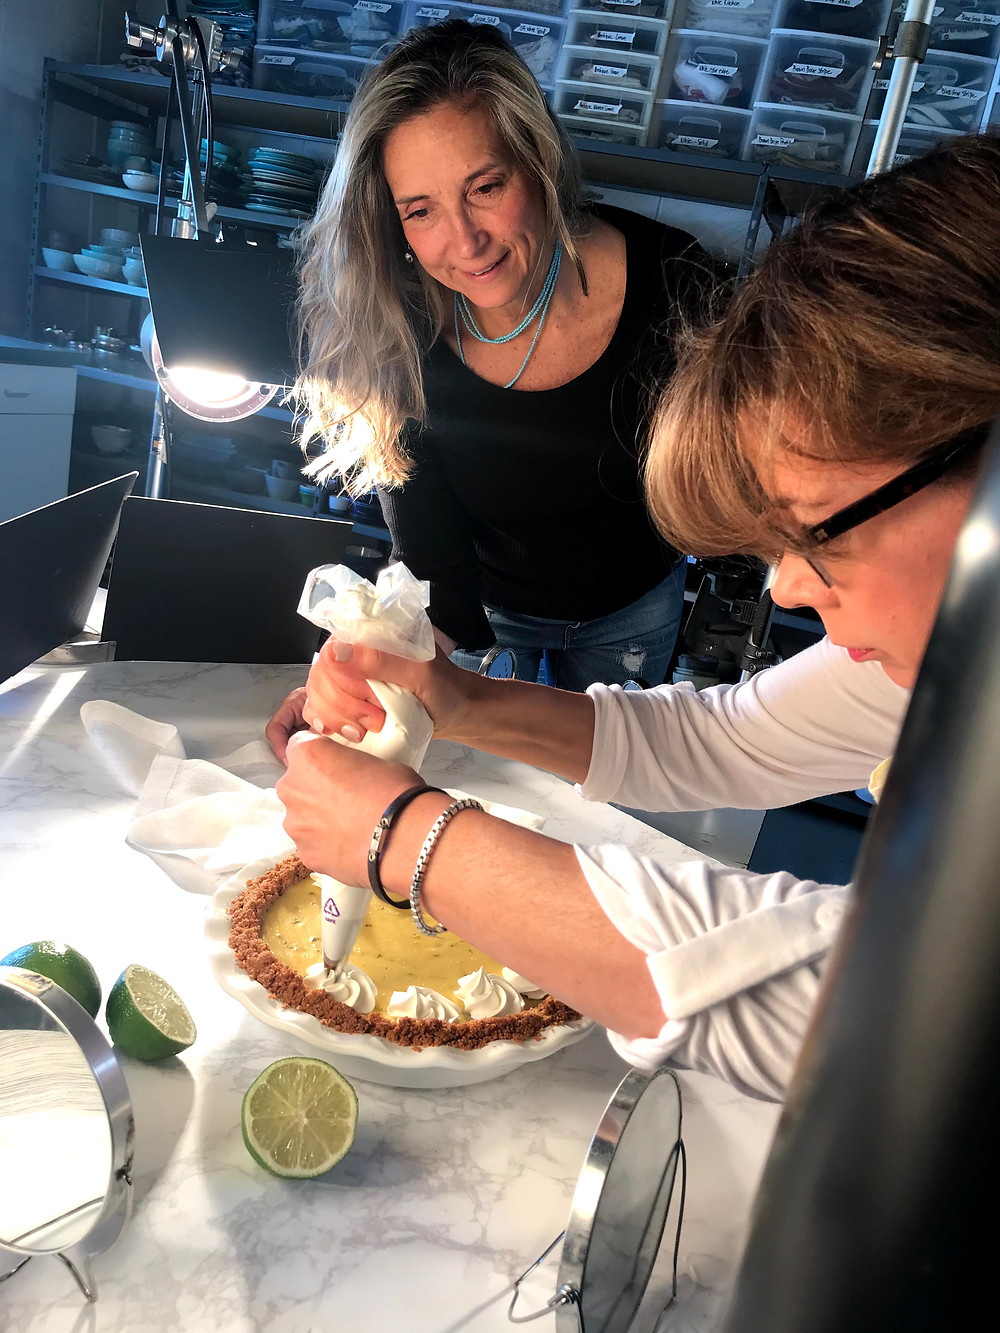 Here are some behind the scenes getting piping the perfect trim of whipped cream! Yummy!